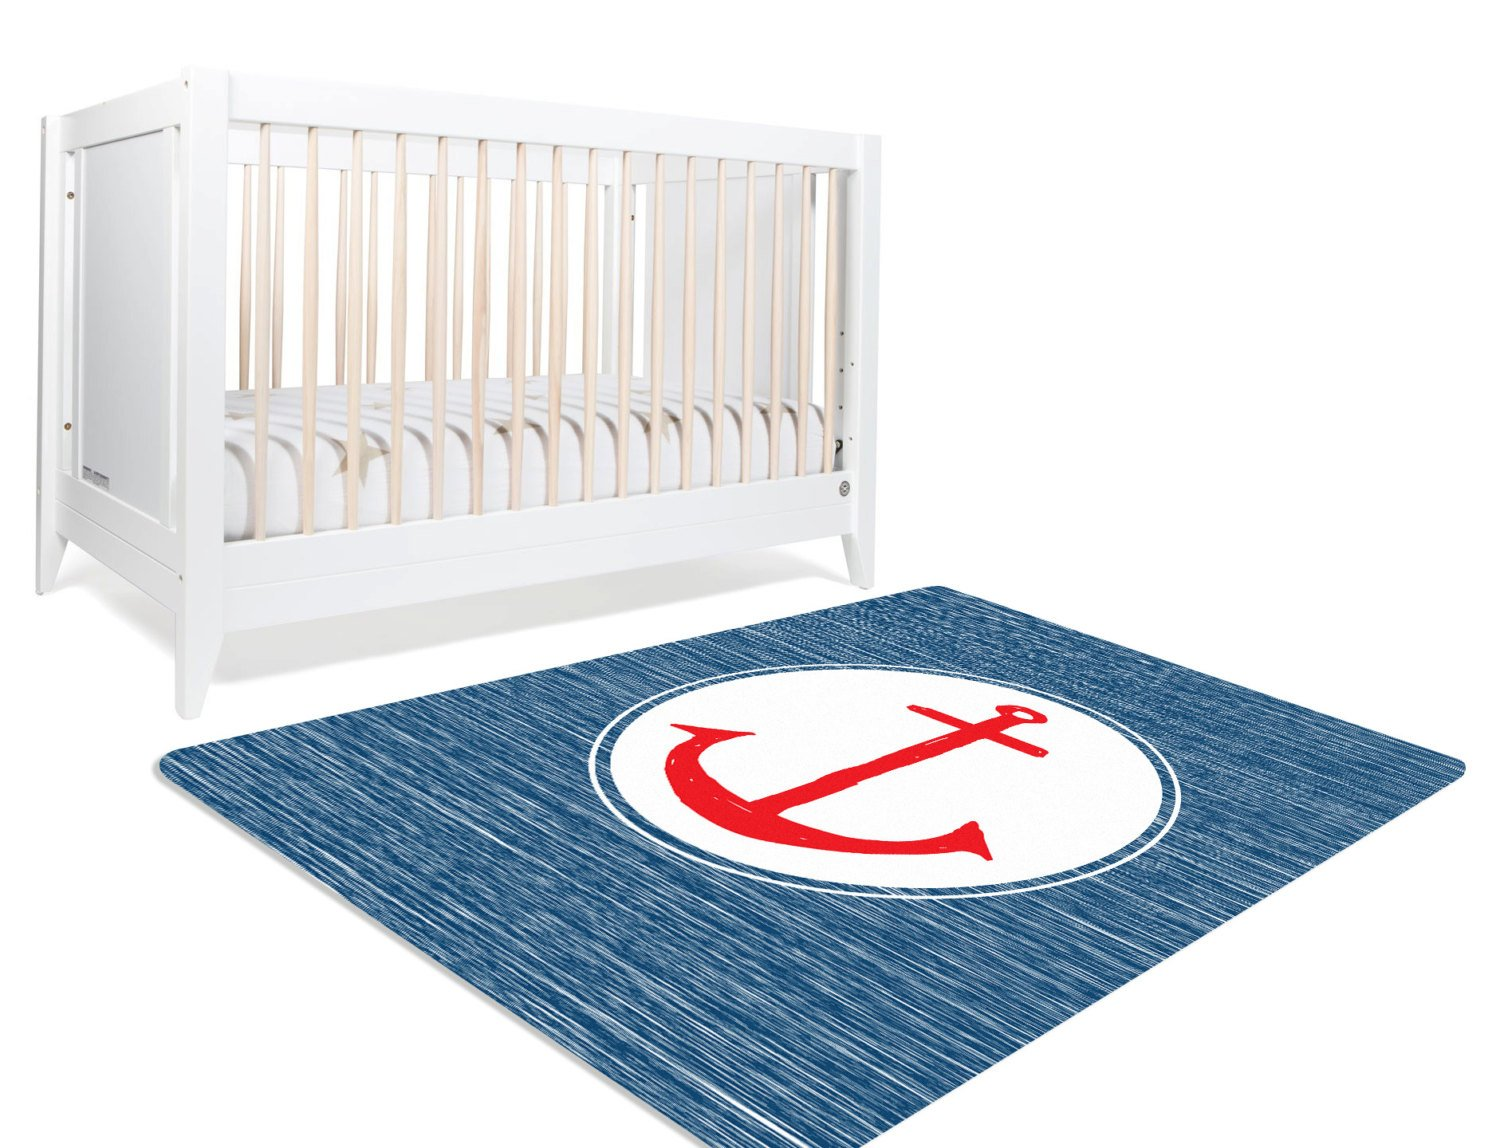 Setting Sail- Nautical Rug, Nautical Decor, Anchor Nursery Decor, Nautical Nursery Decor